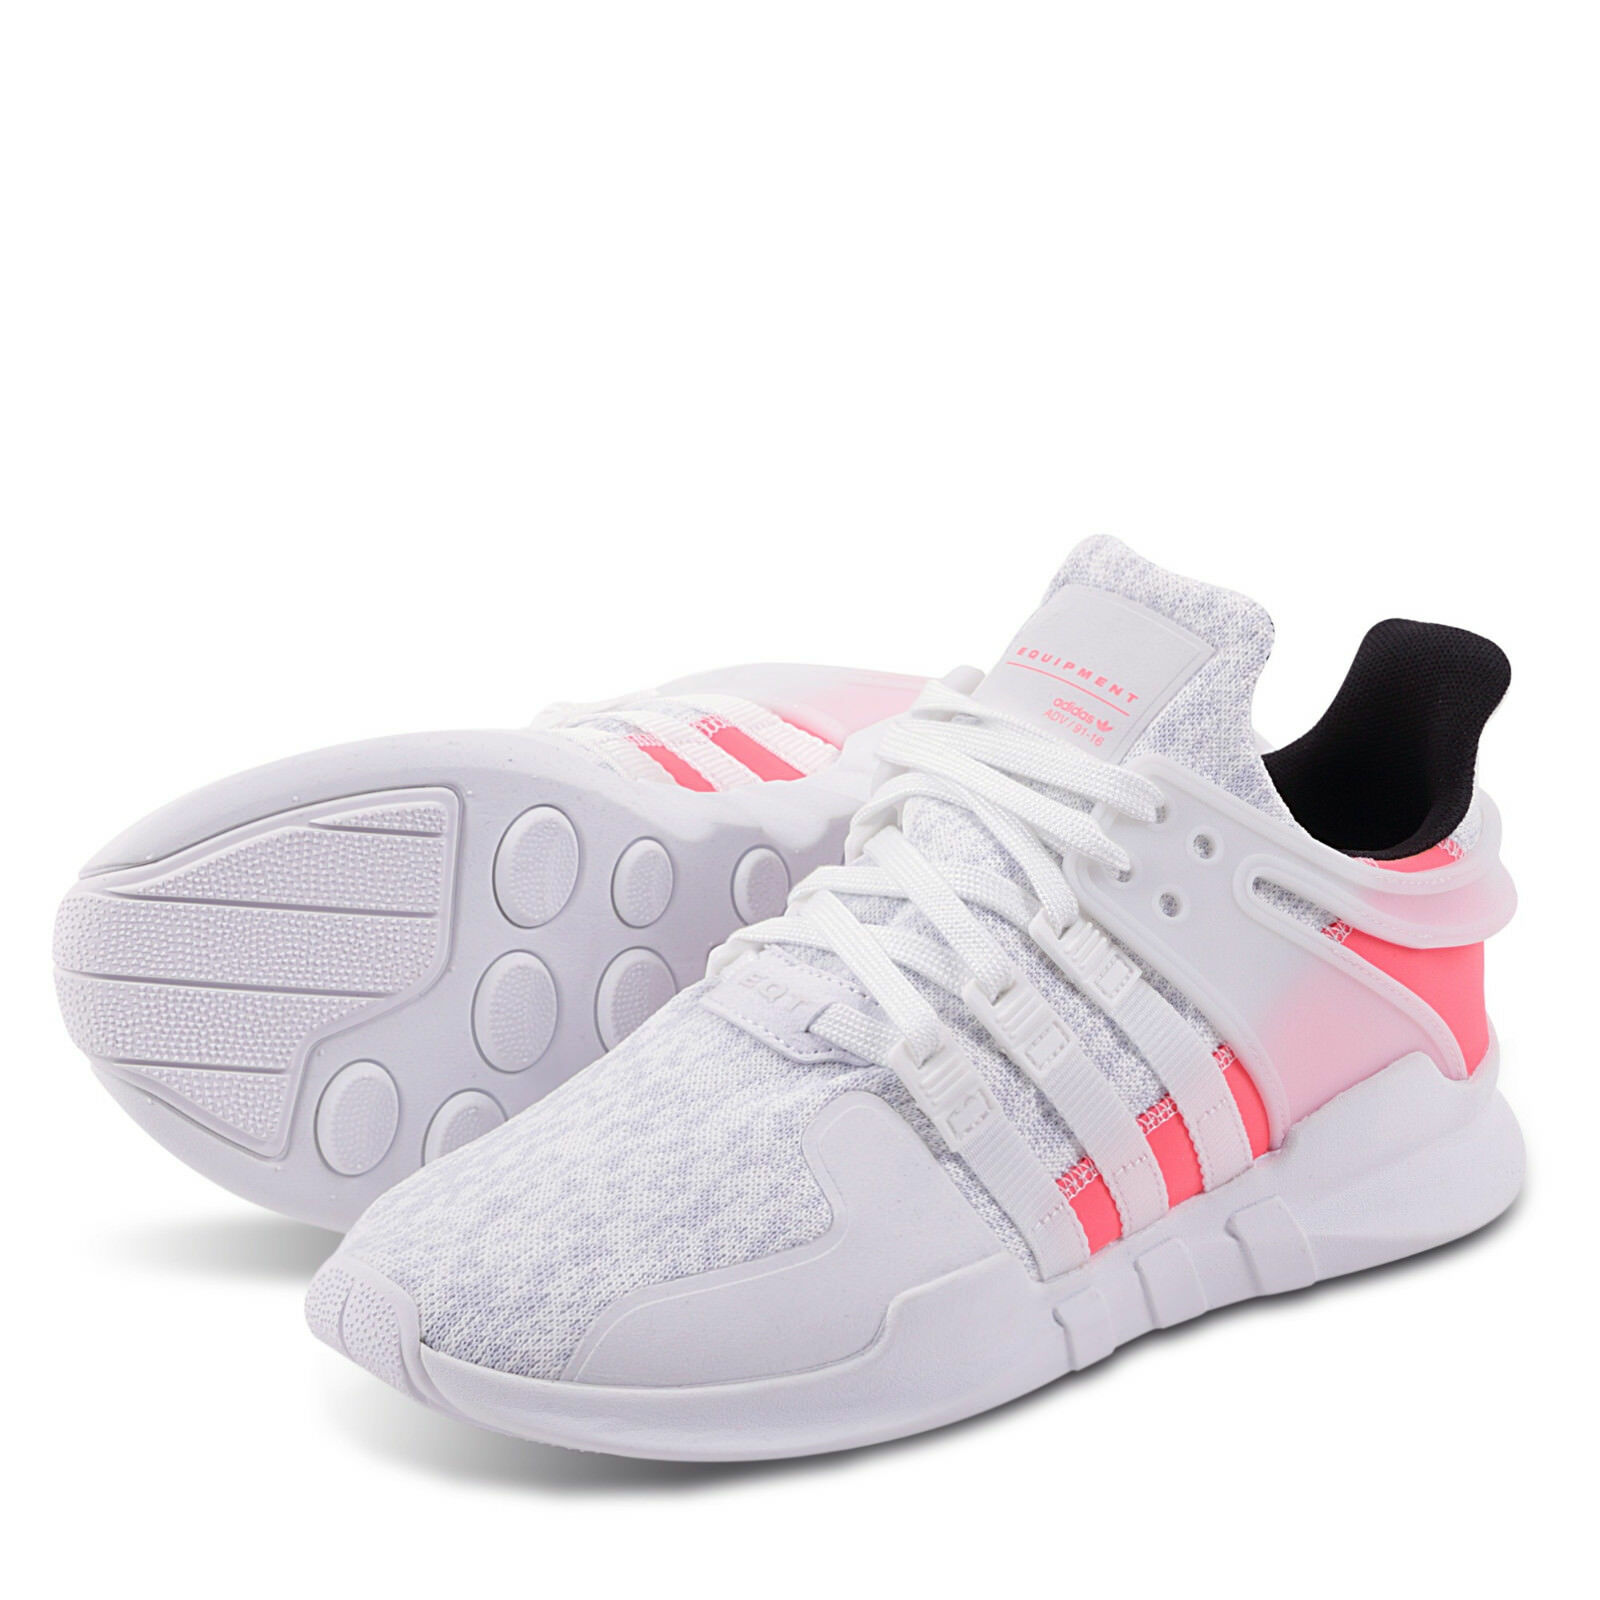 ADIDAS EQT SUPPORT 7.5 ADV White/turbo Running Trainers BB2791 Sizes 7.5 SUPPORT - 10.5 93ea99